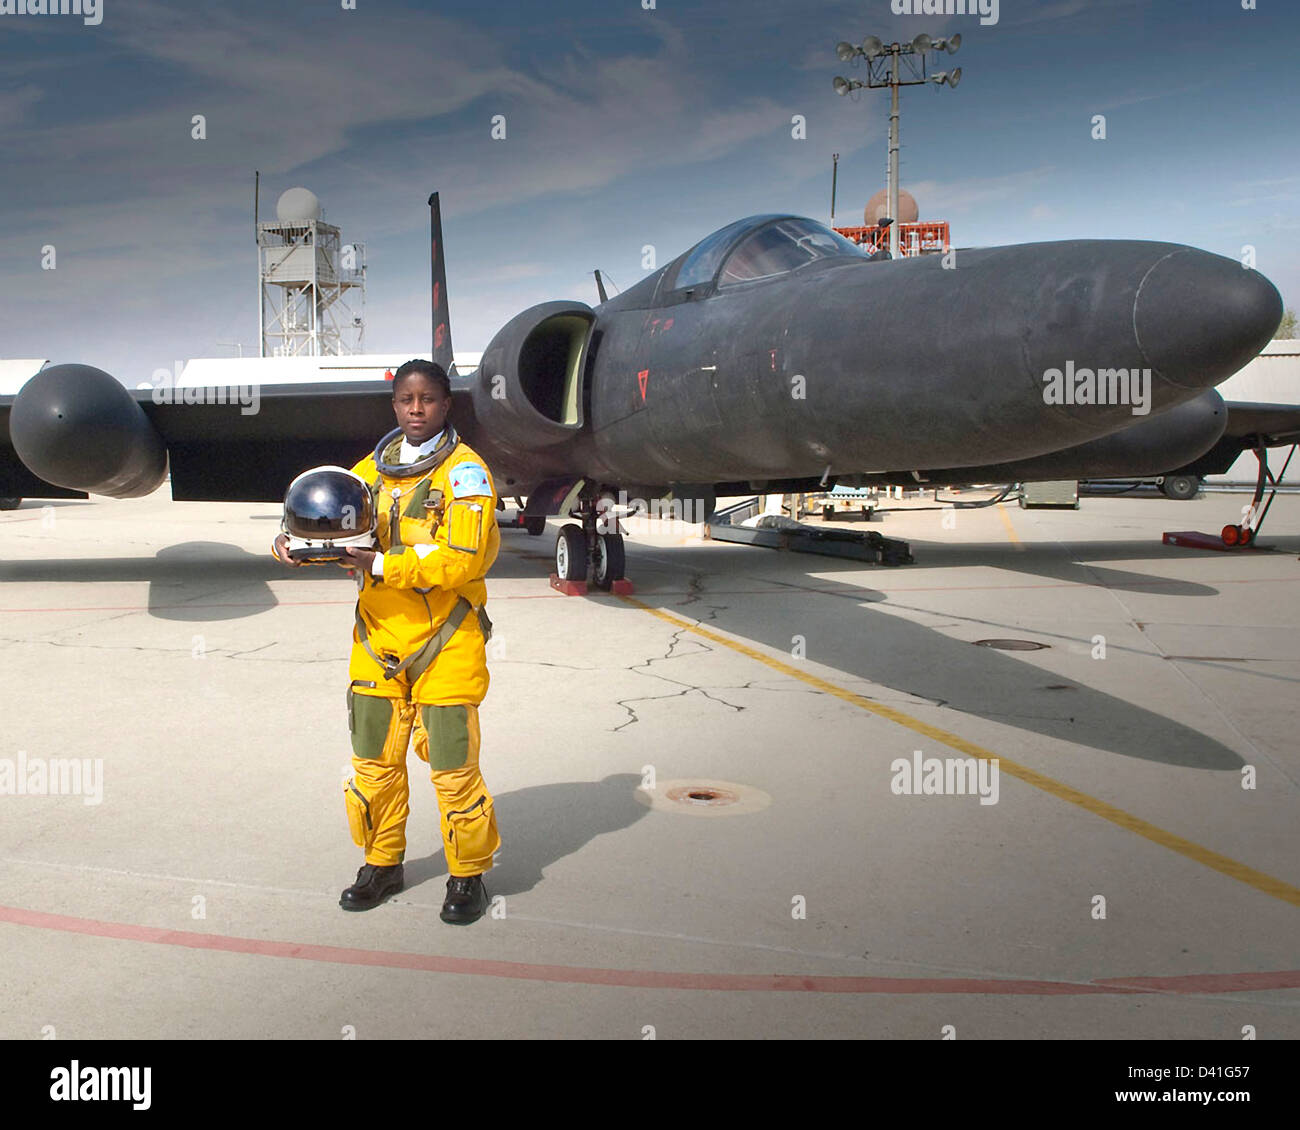 Air Force Lt. Col. Merryl Tengesdal poses with a U-2 reconnaissance aircraft at the North American Aerospace Defense - Stock Image